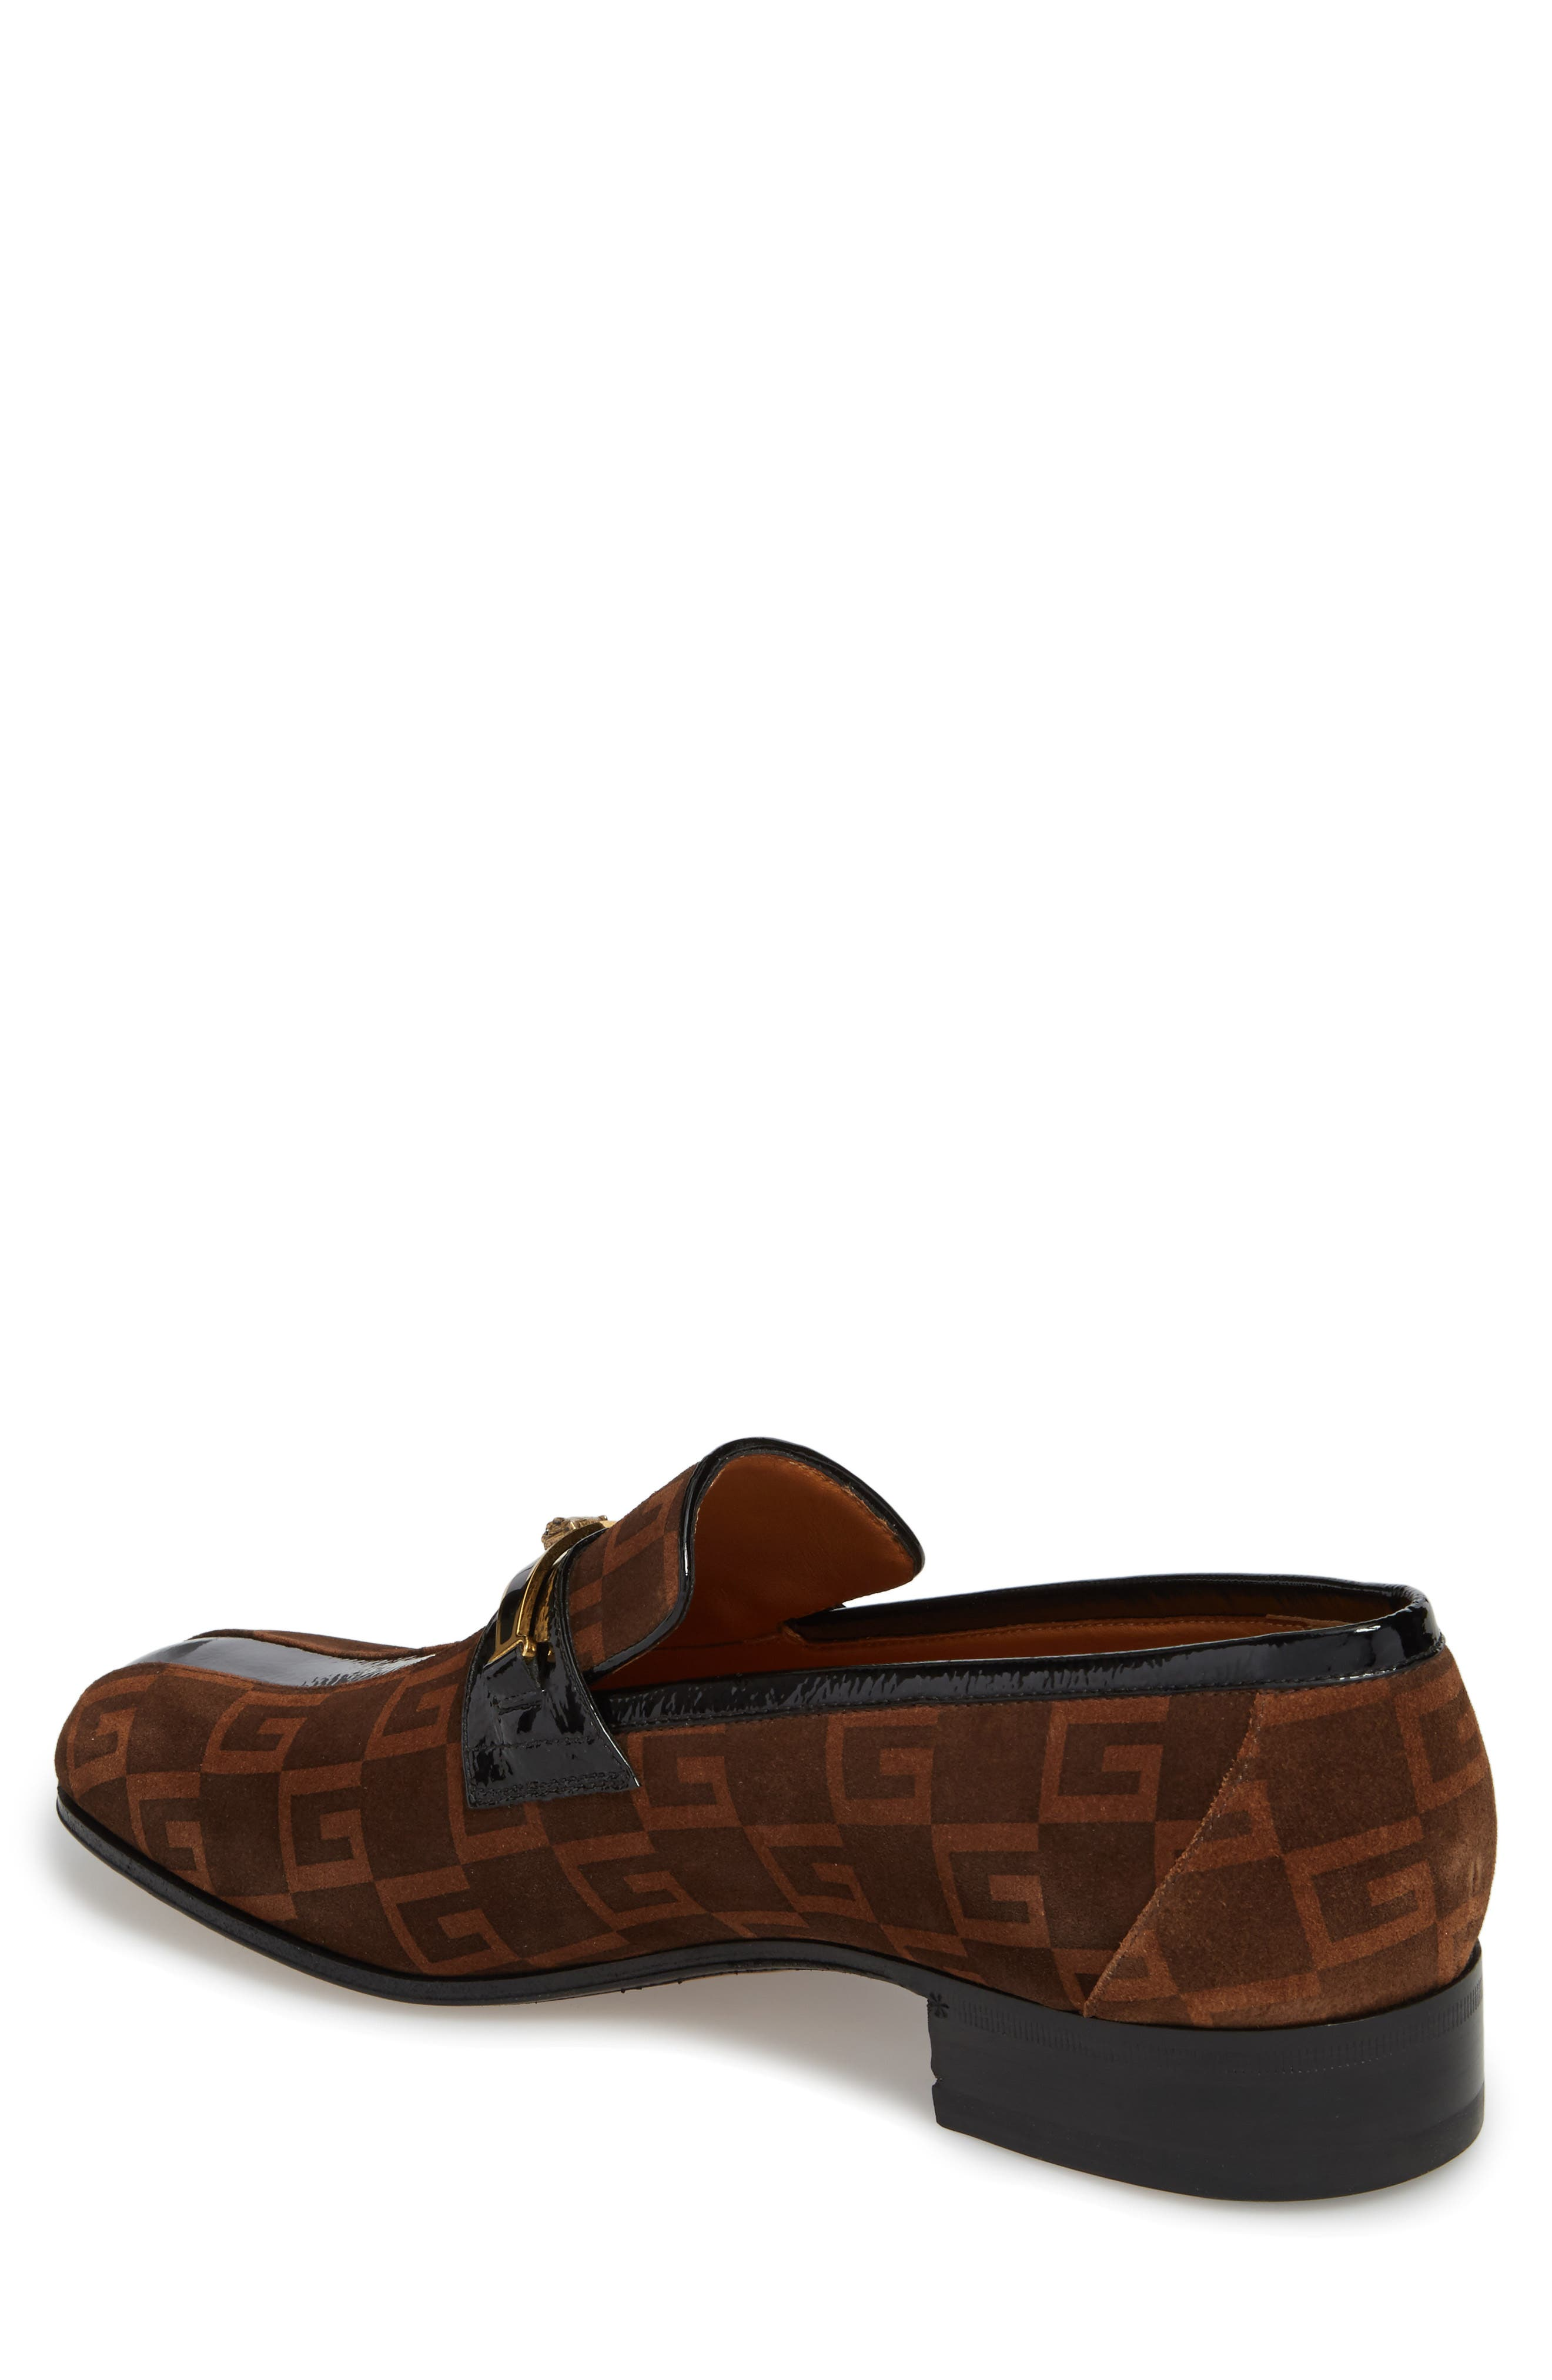 Square-G Loafer,                             Alternate thumbnail 2, color,                             NERO SIGARO